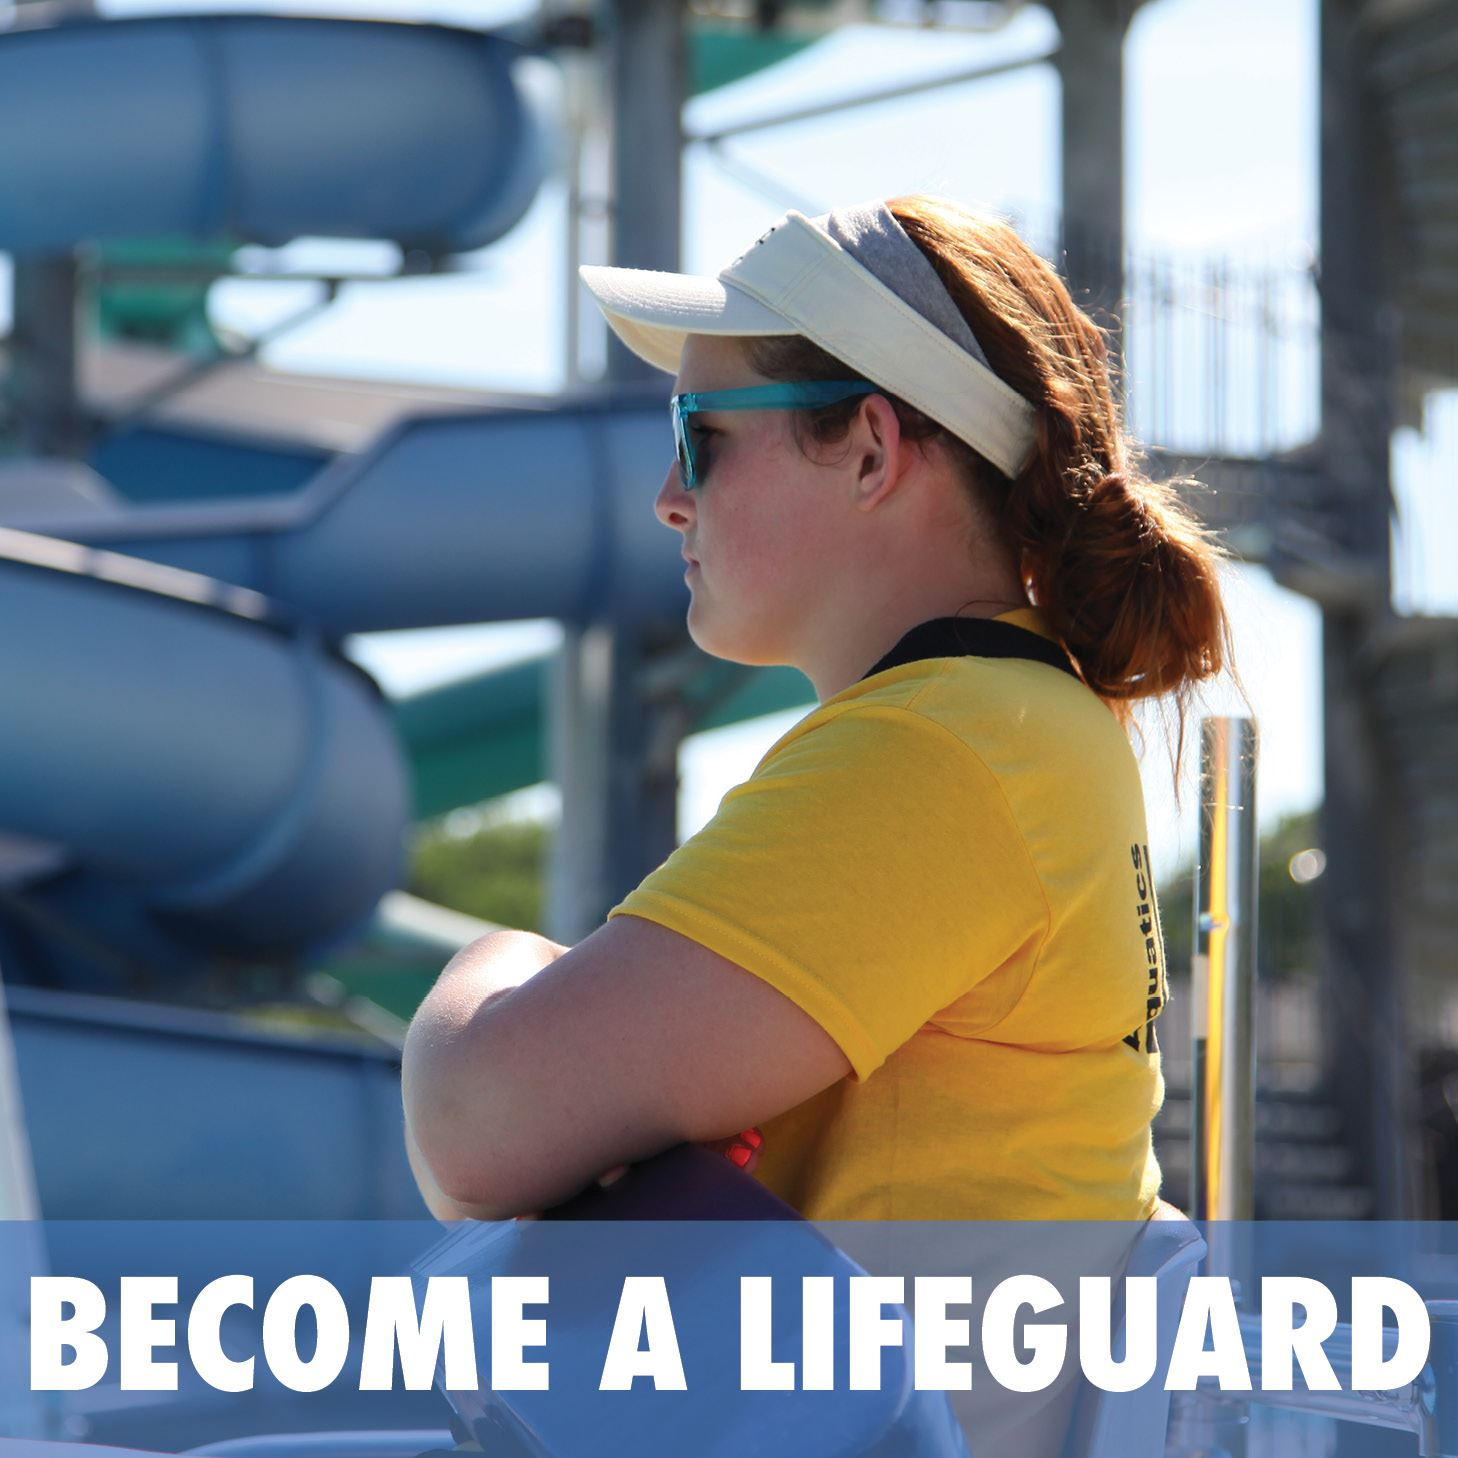 Lifeguards Wanted